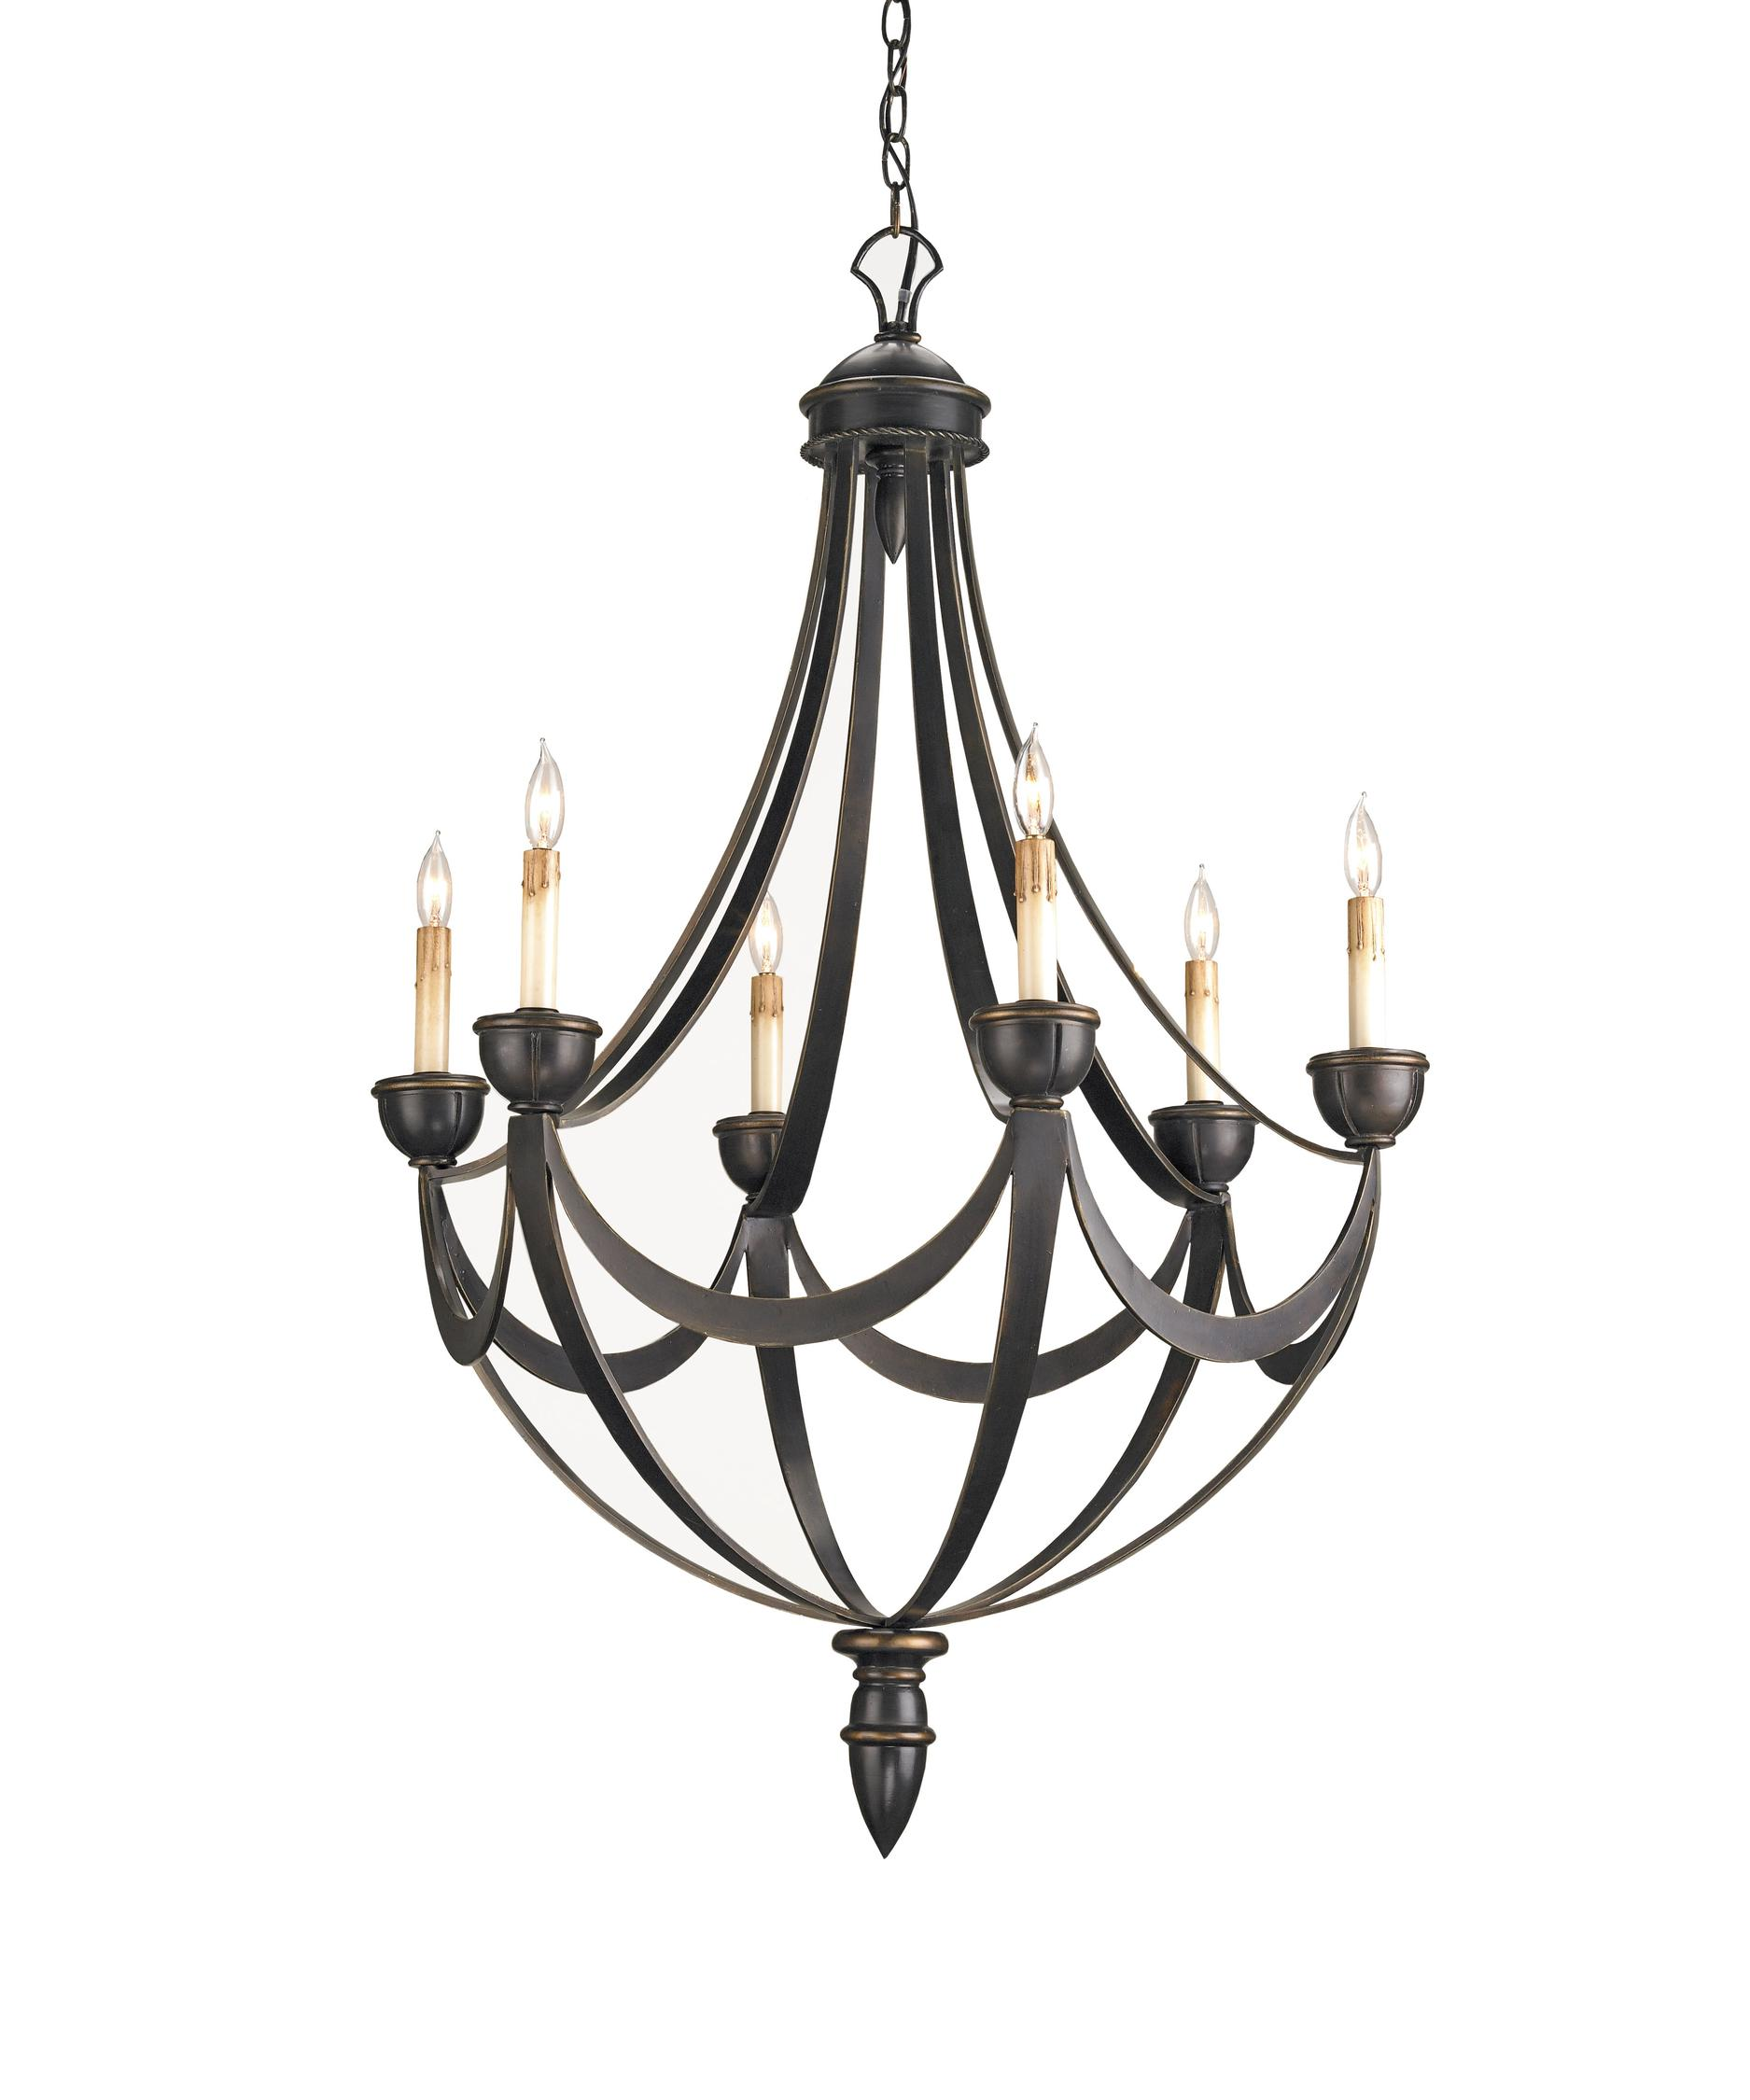 Currey And Company Bathroom Lighting: Currey And Company 9042 Palomino 28 Inch Chandelier